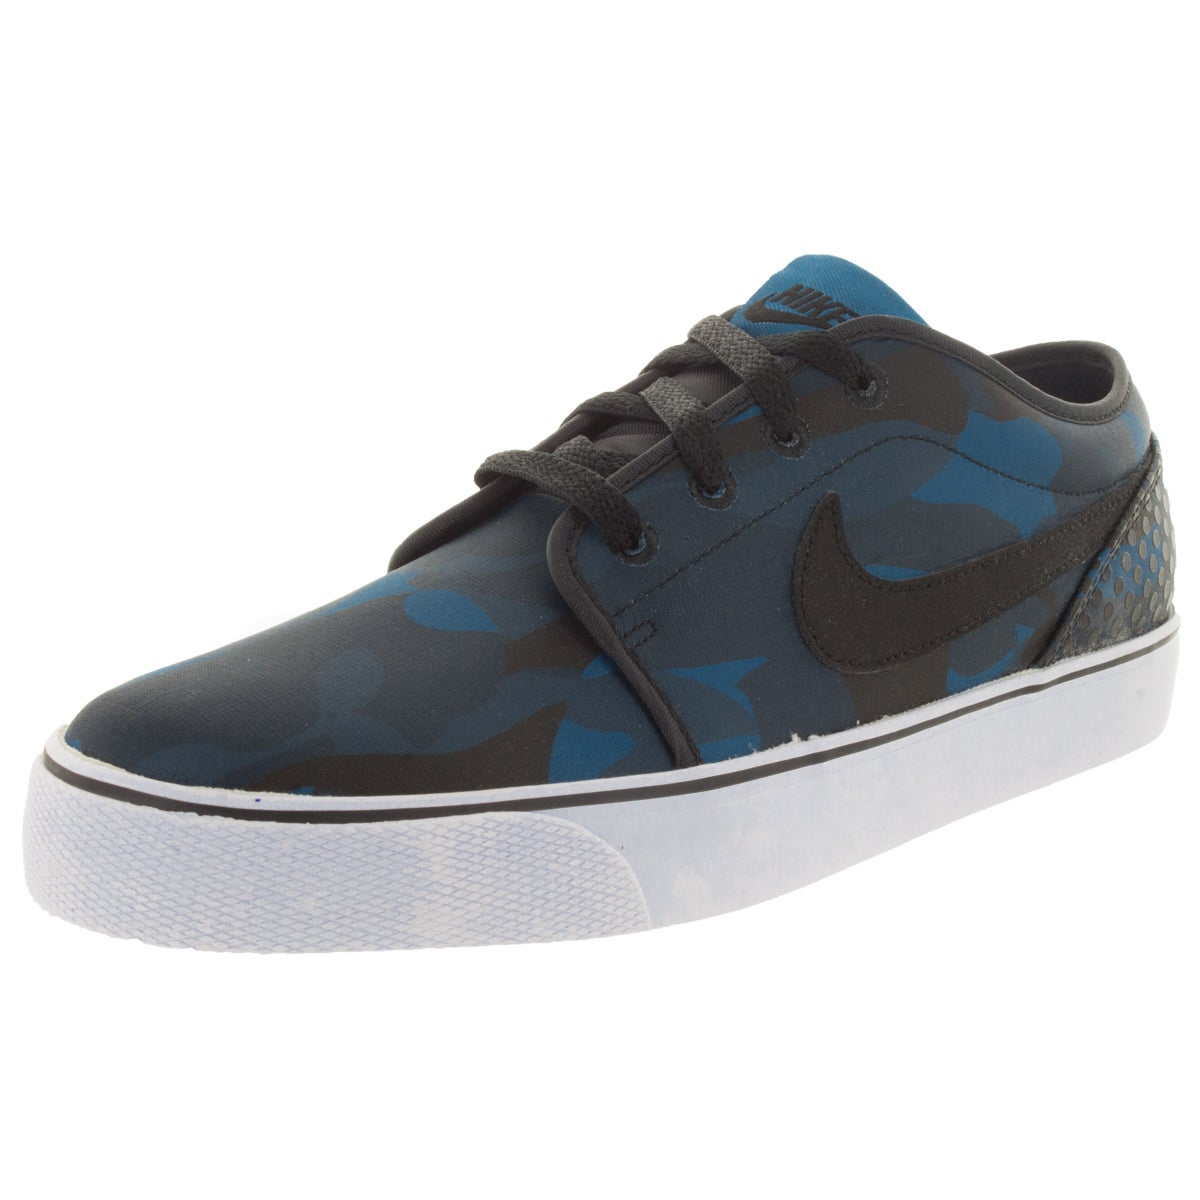 Nike Men's Toki Red/Multicolor Canvas Casual Walking Shoe...